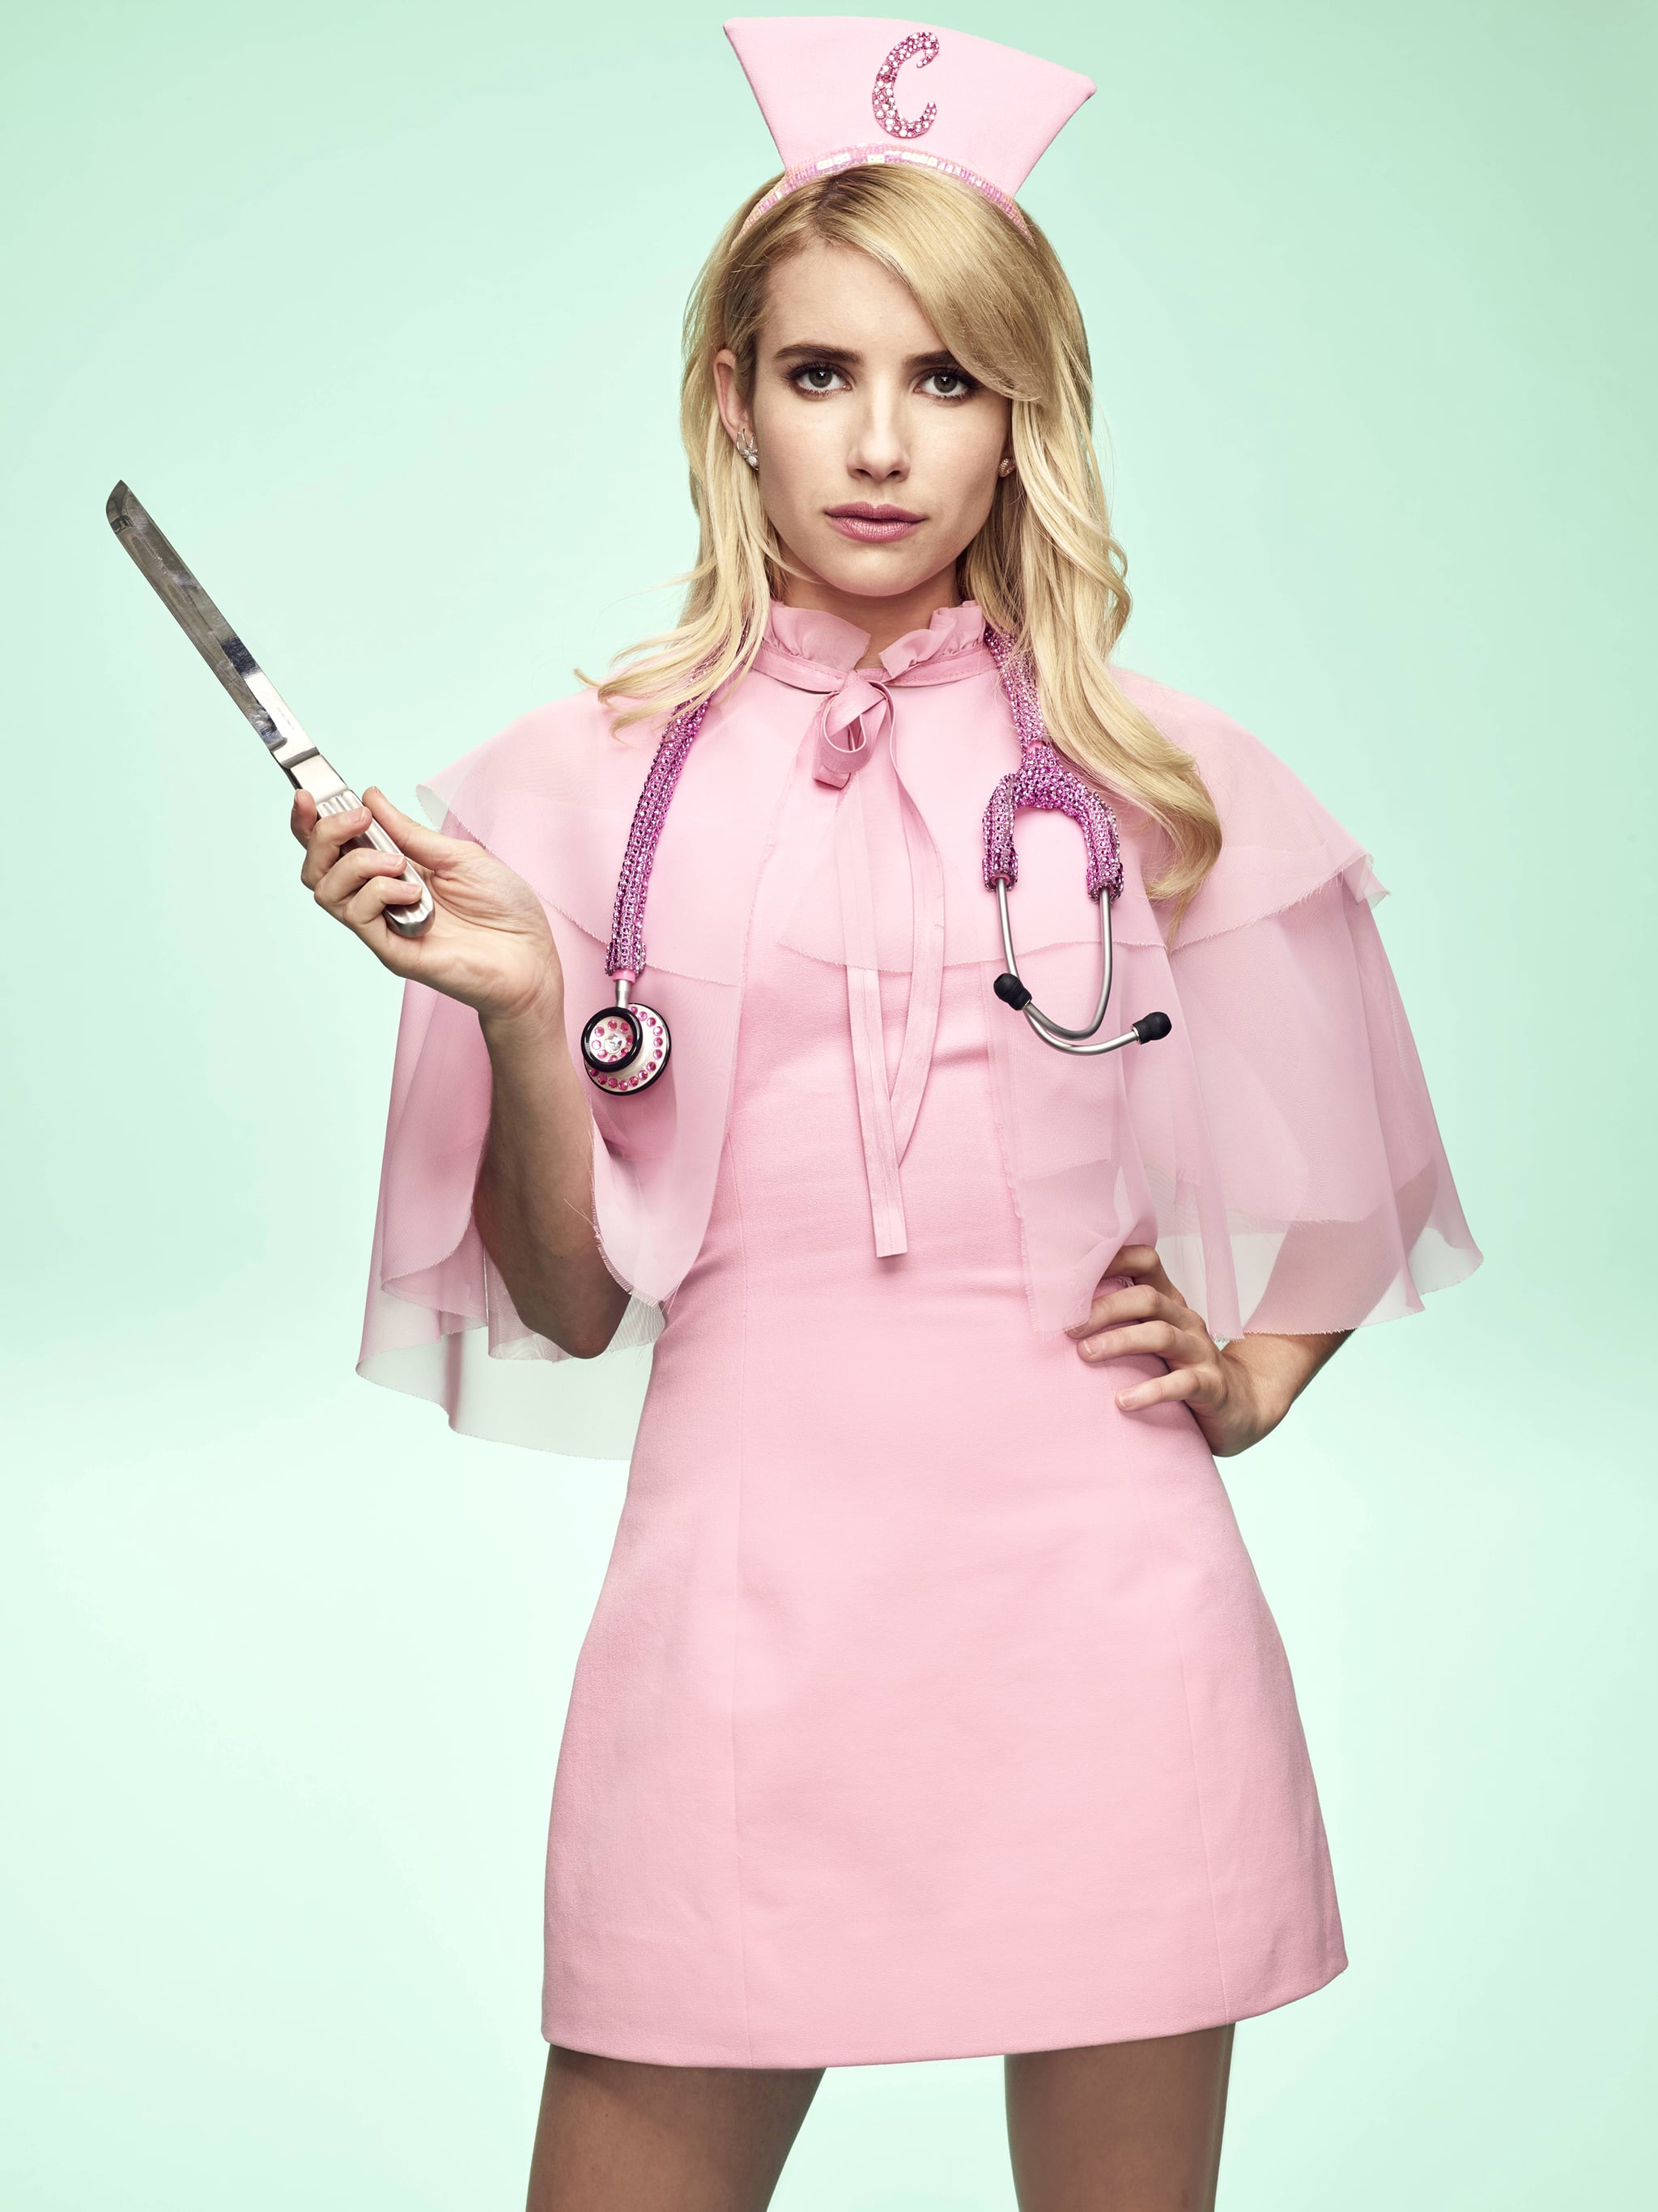 Emma Roberts As Chanel Oberlin Scream Queens Season 2 Looks Positively Freaky Popsugar Entertainment Photo 15